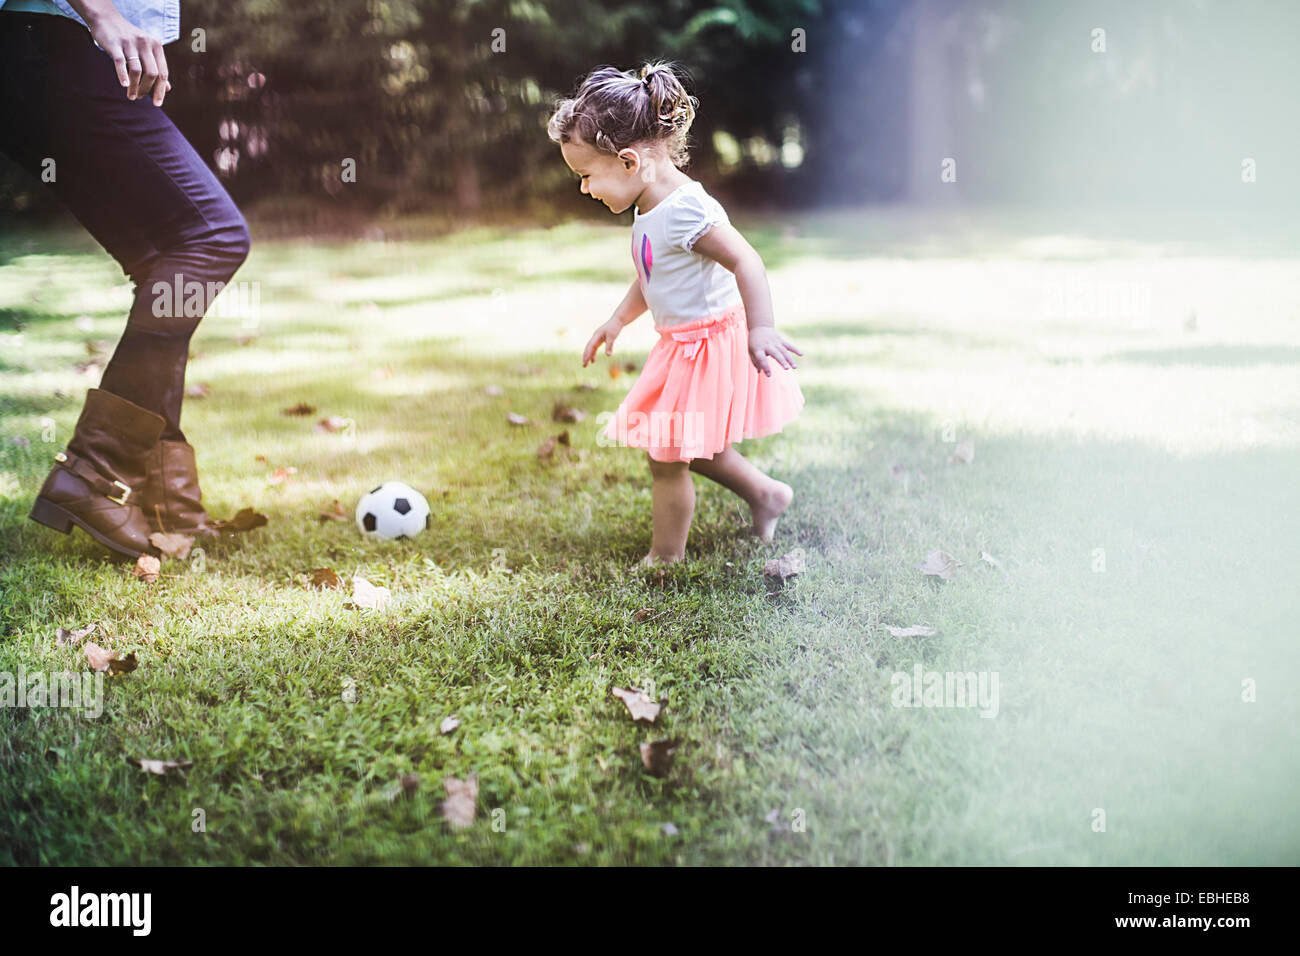 Baby girl playing ball in garden - Stock Image